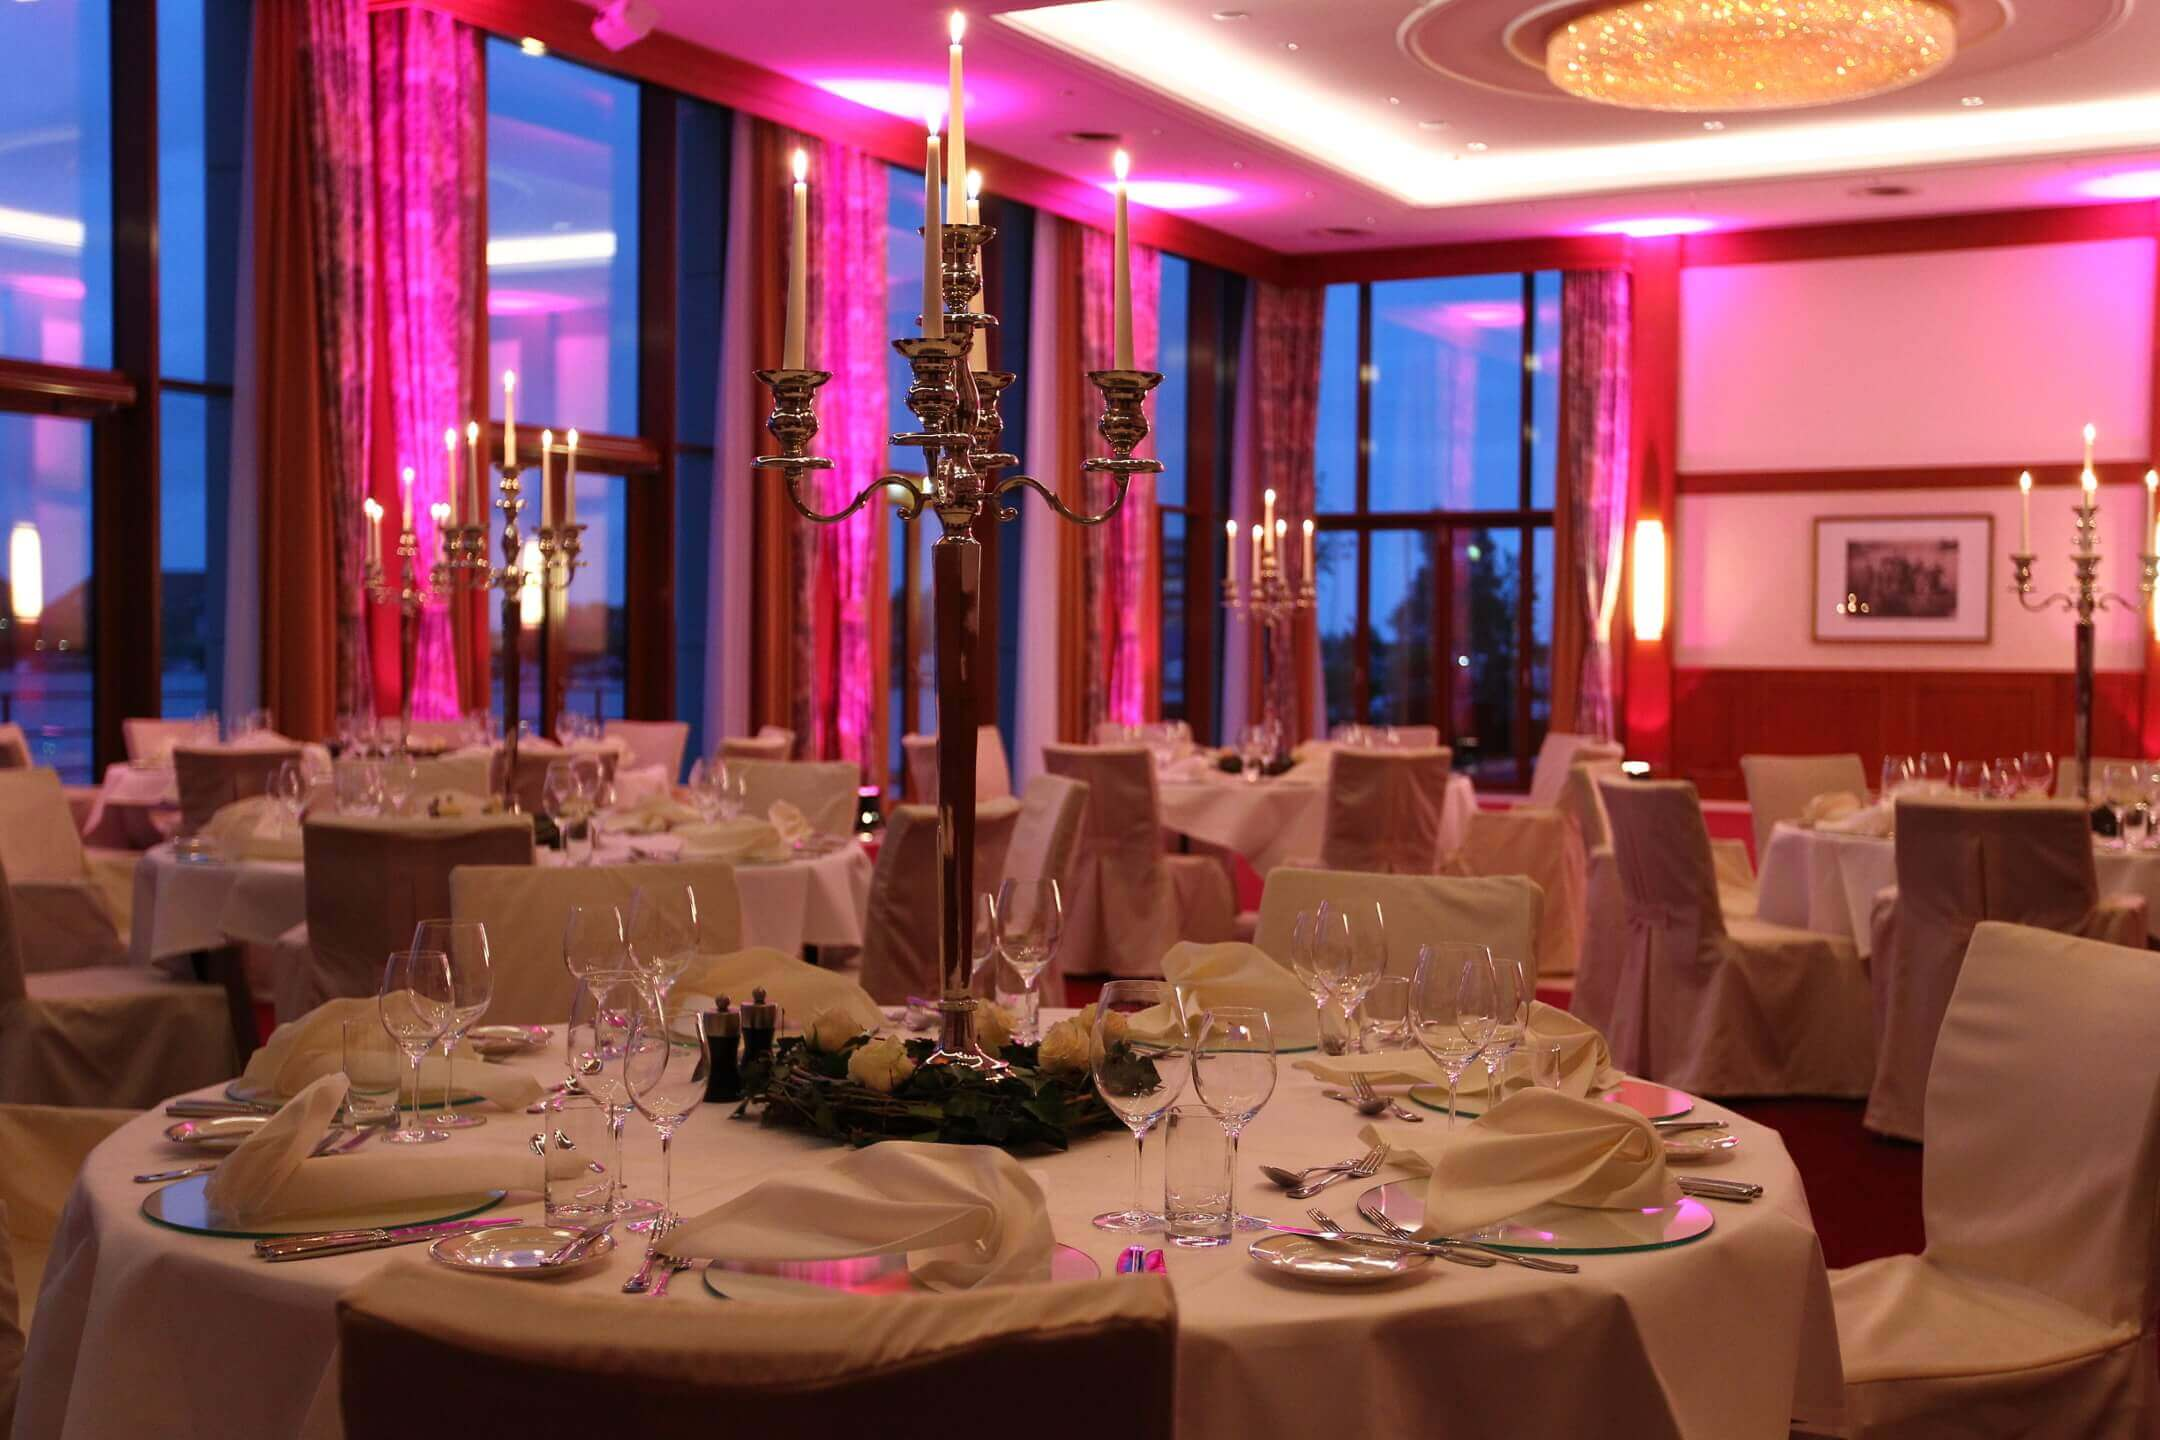 Celebrating in the banquet hall │ ATLANTIC Hotel Wilhelmshaven